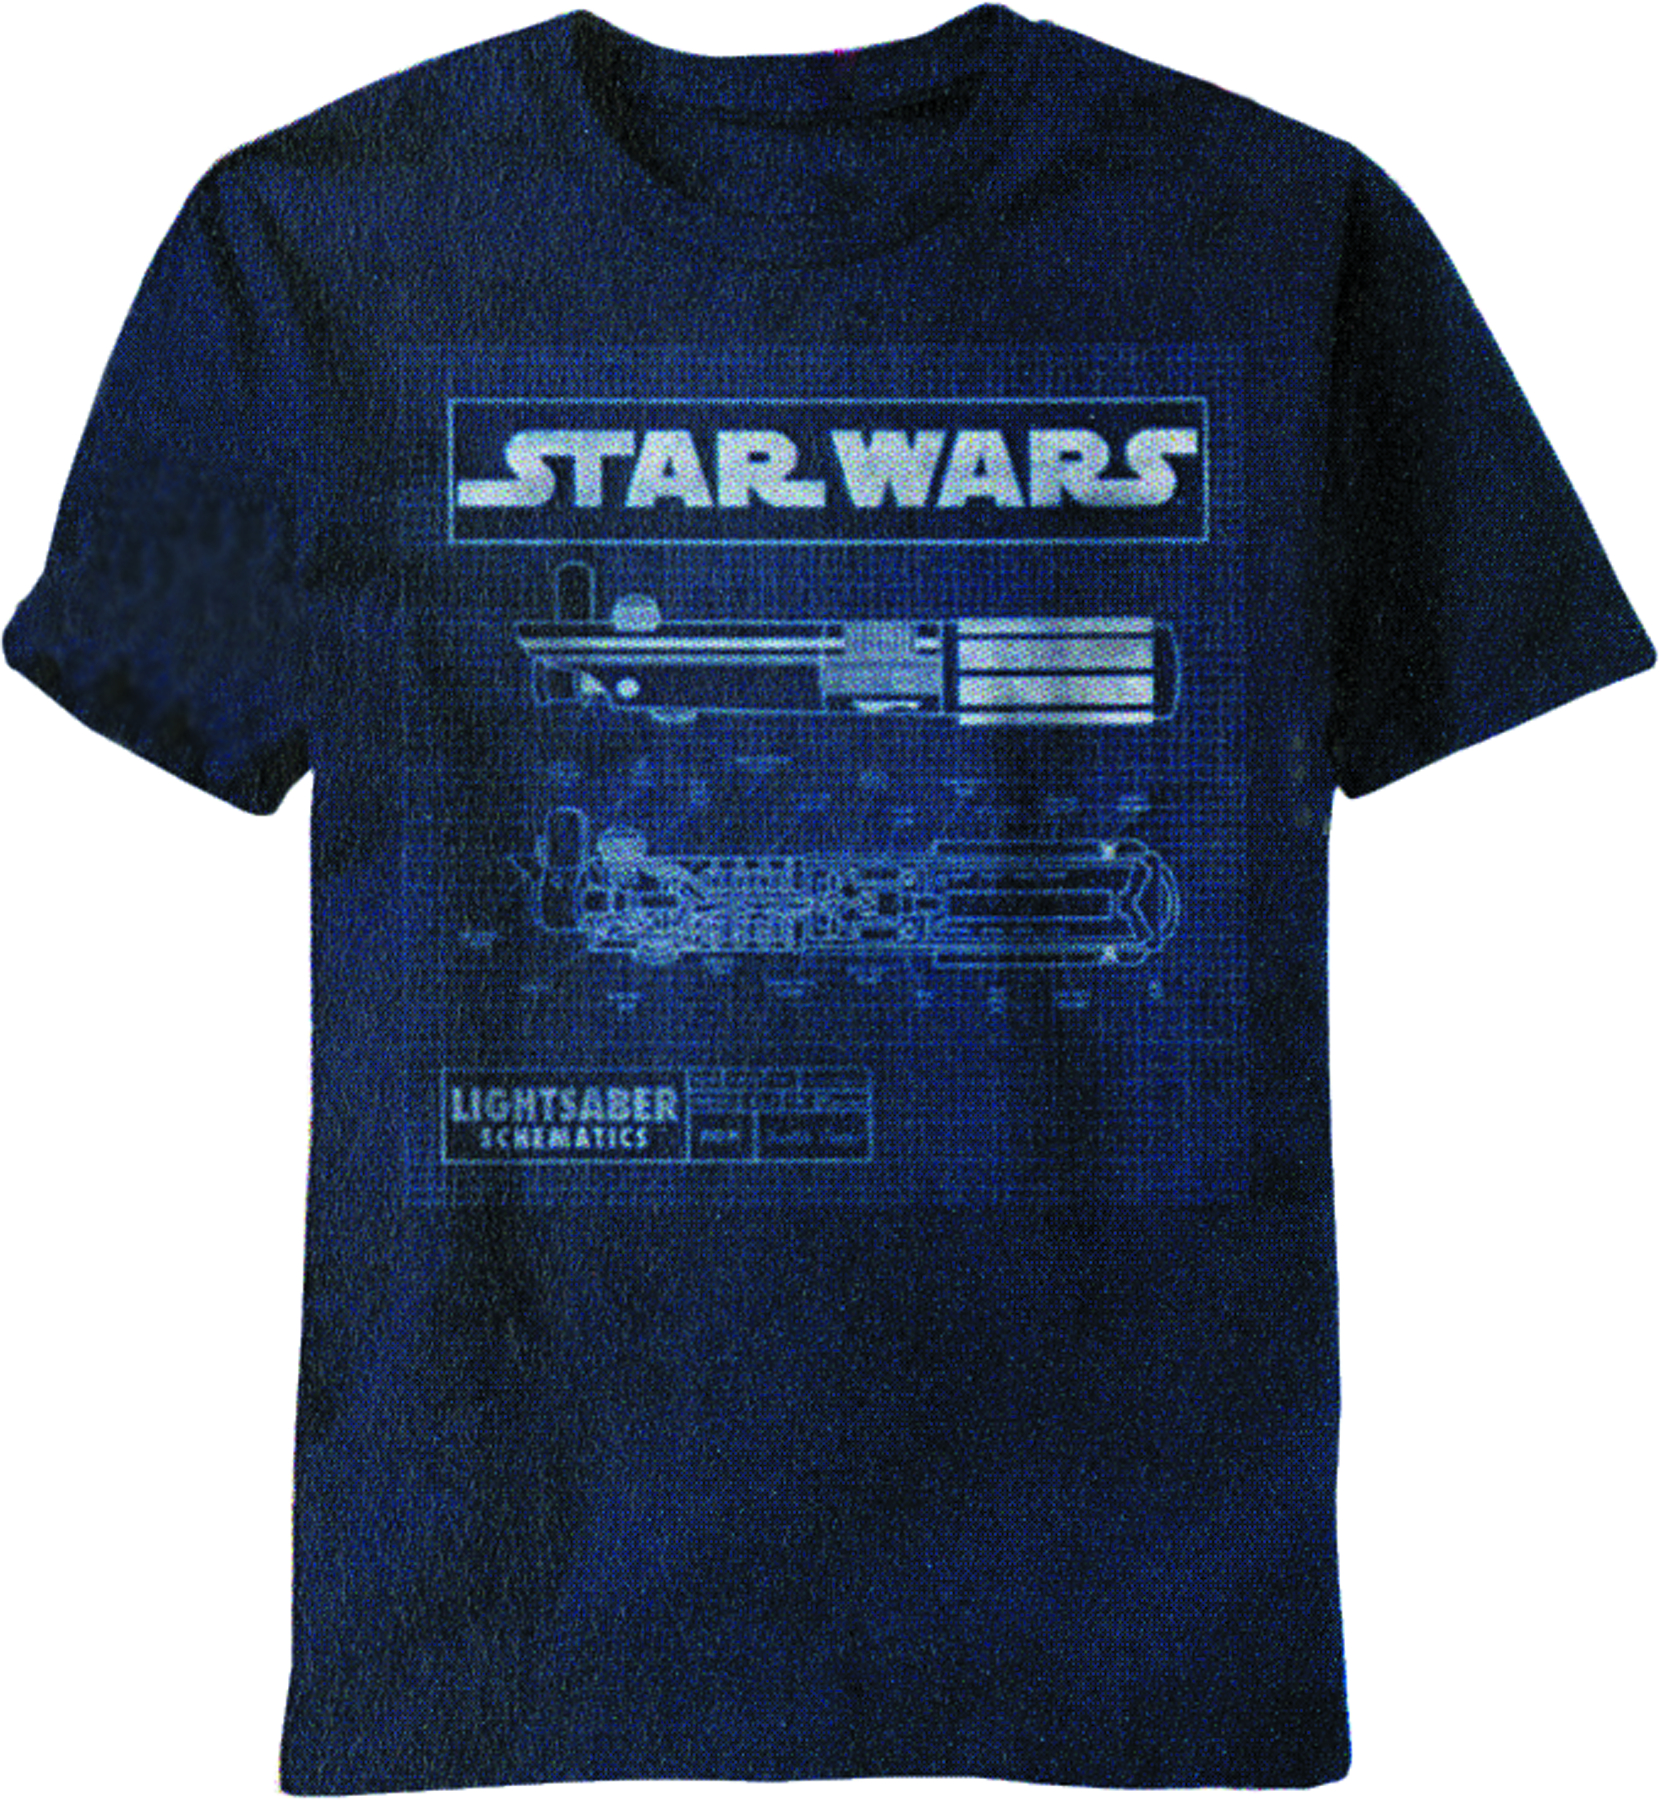 STAR WARS SABER DIAGRAM NAVY T/S MED